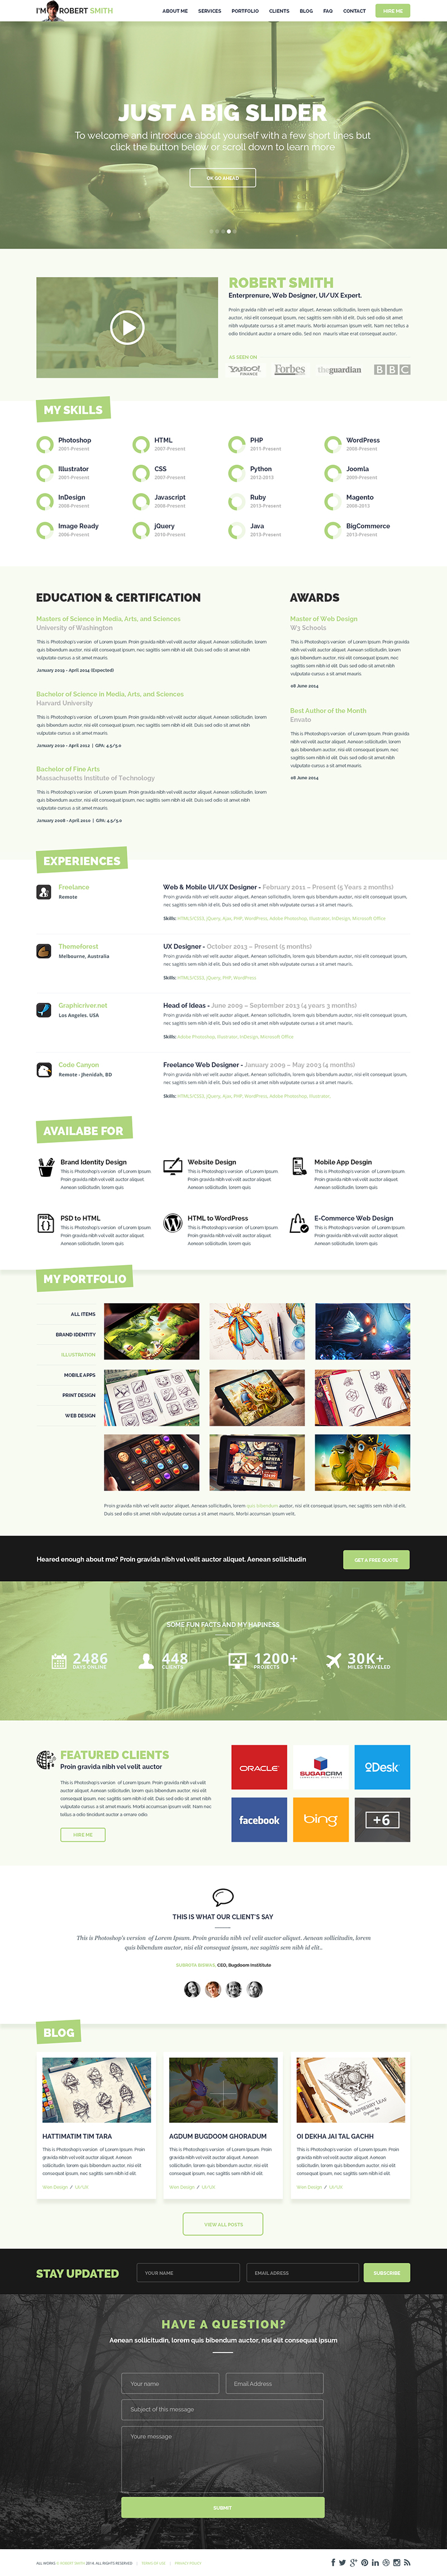 One Page Resume Website Template